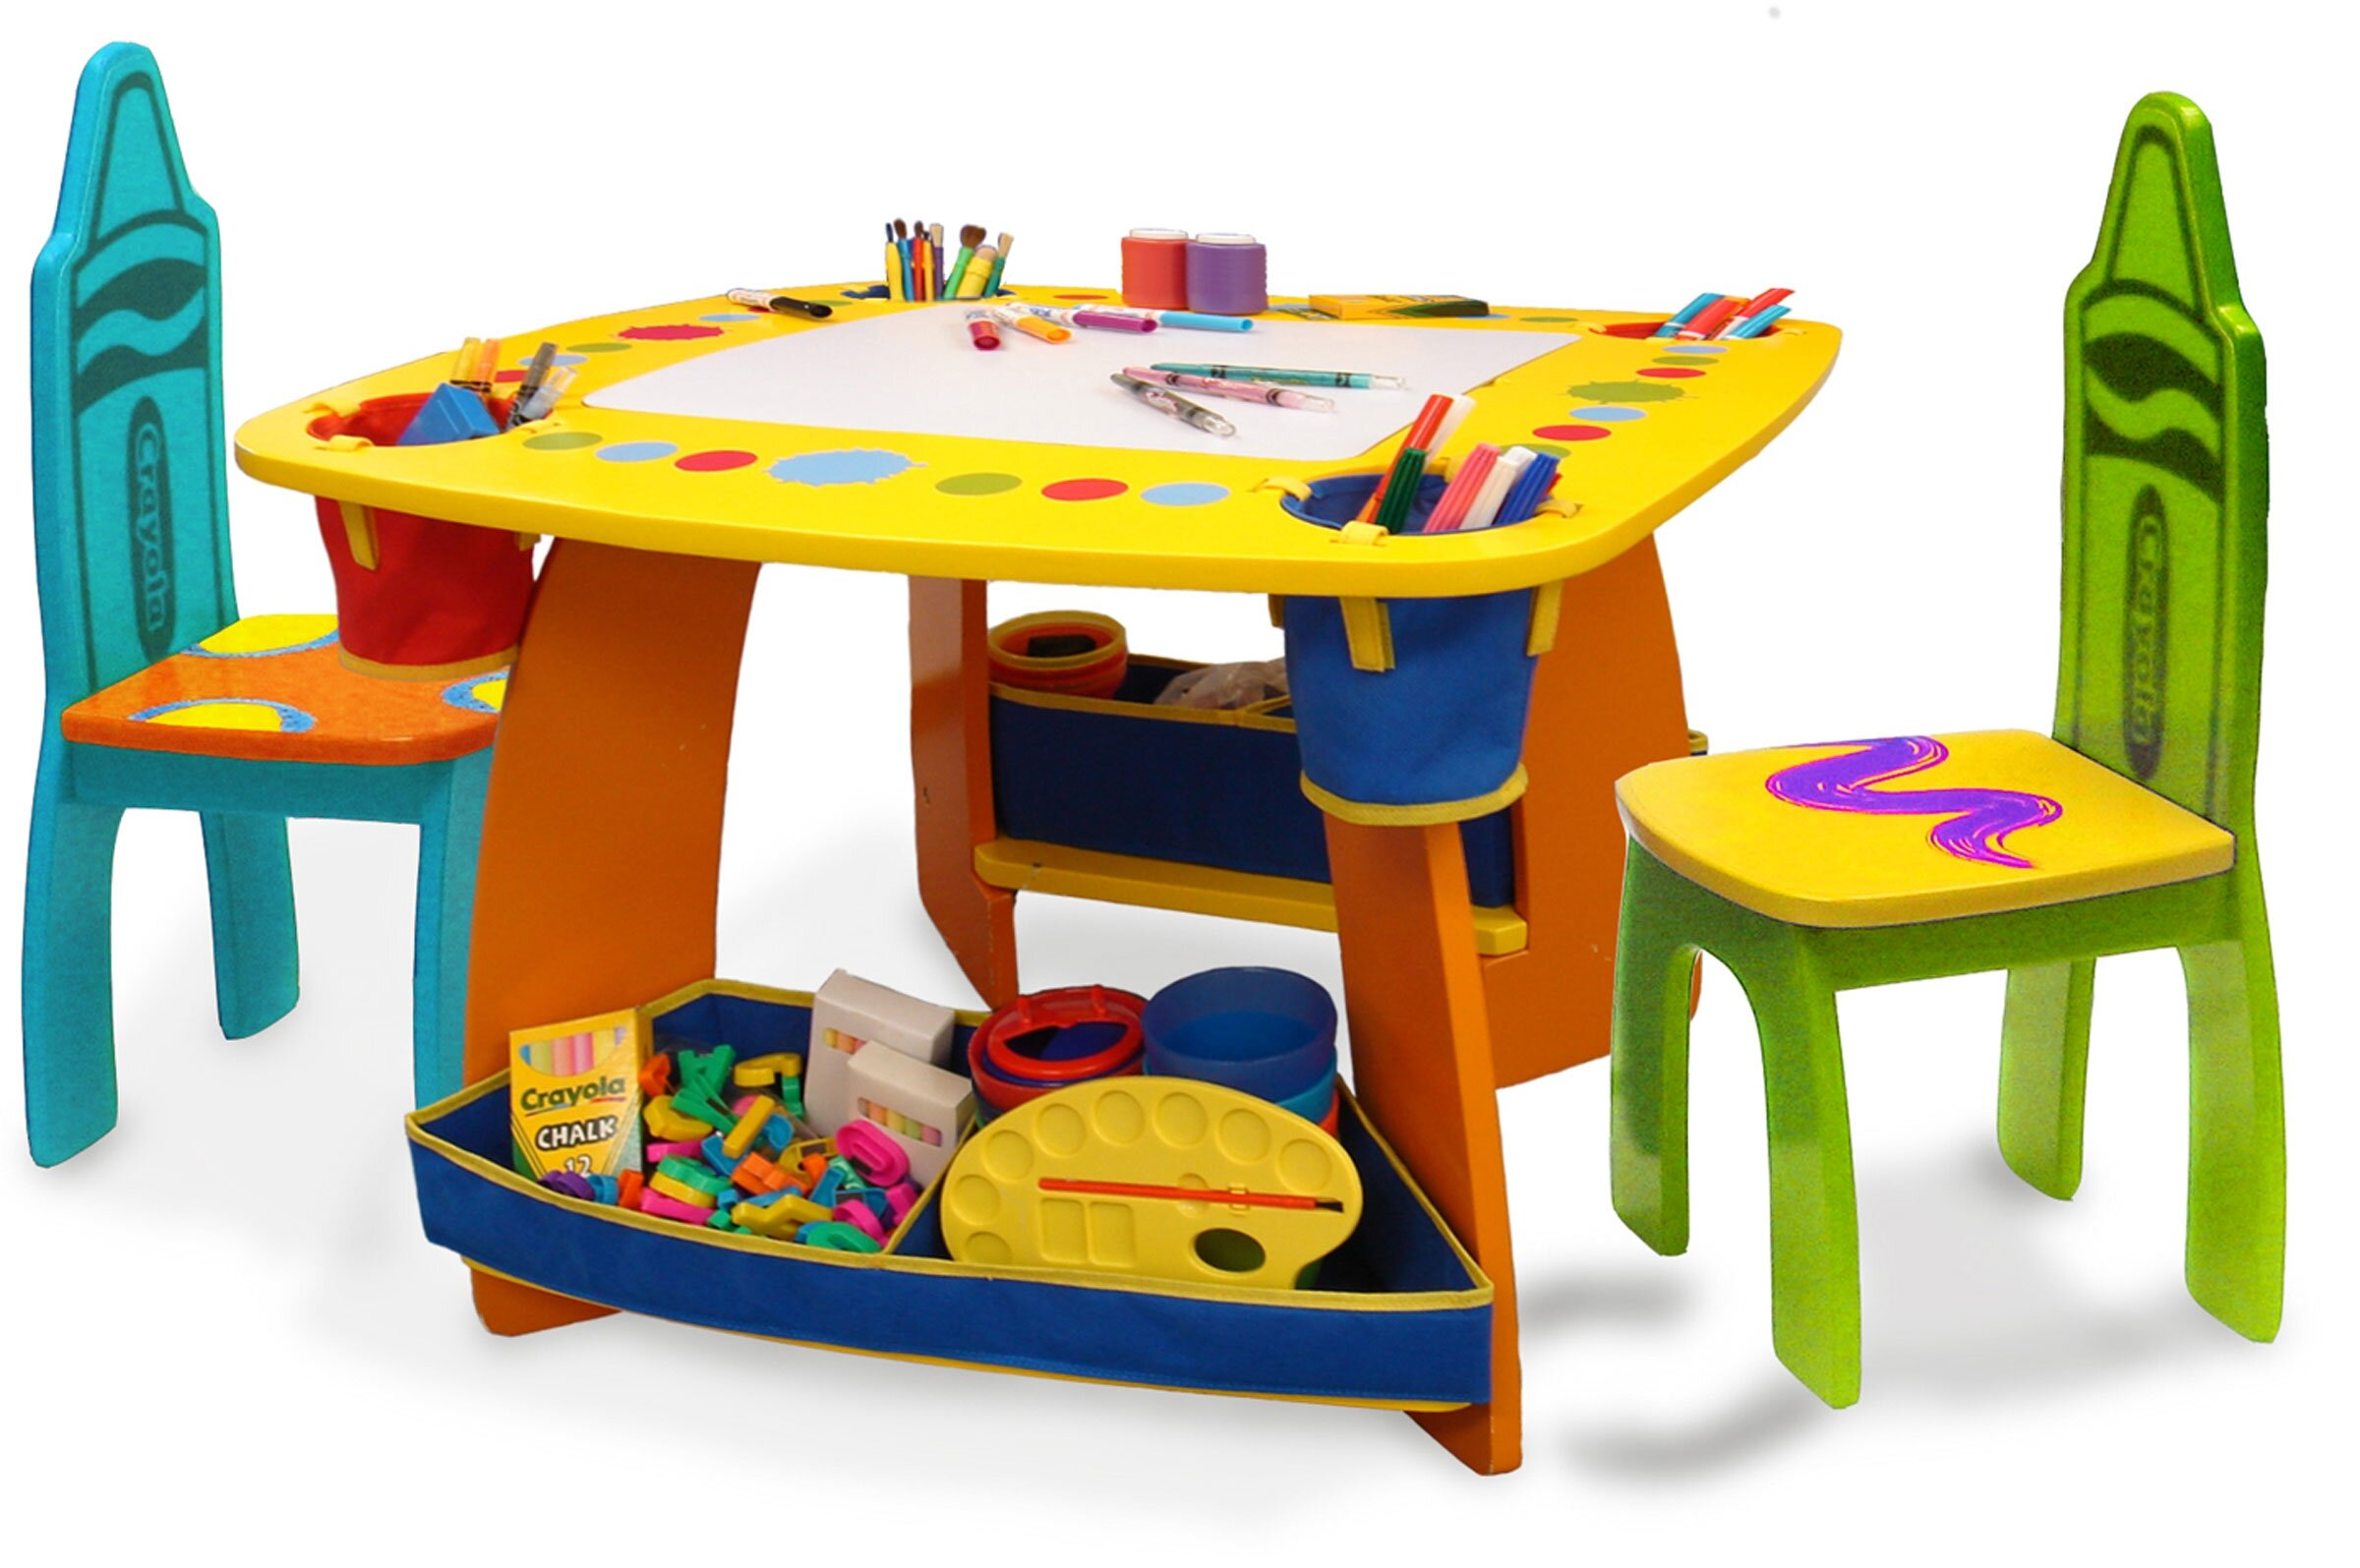 Arts Crafts Kids Table Chair Sets Youll Love Wayfair - Wayfair kids table and chairs